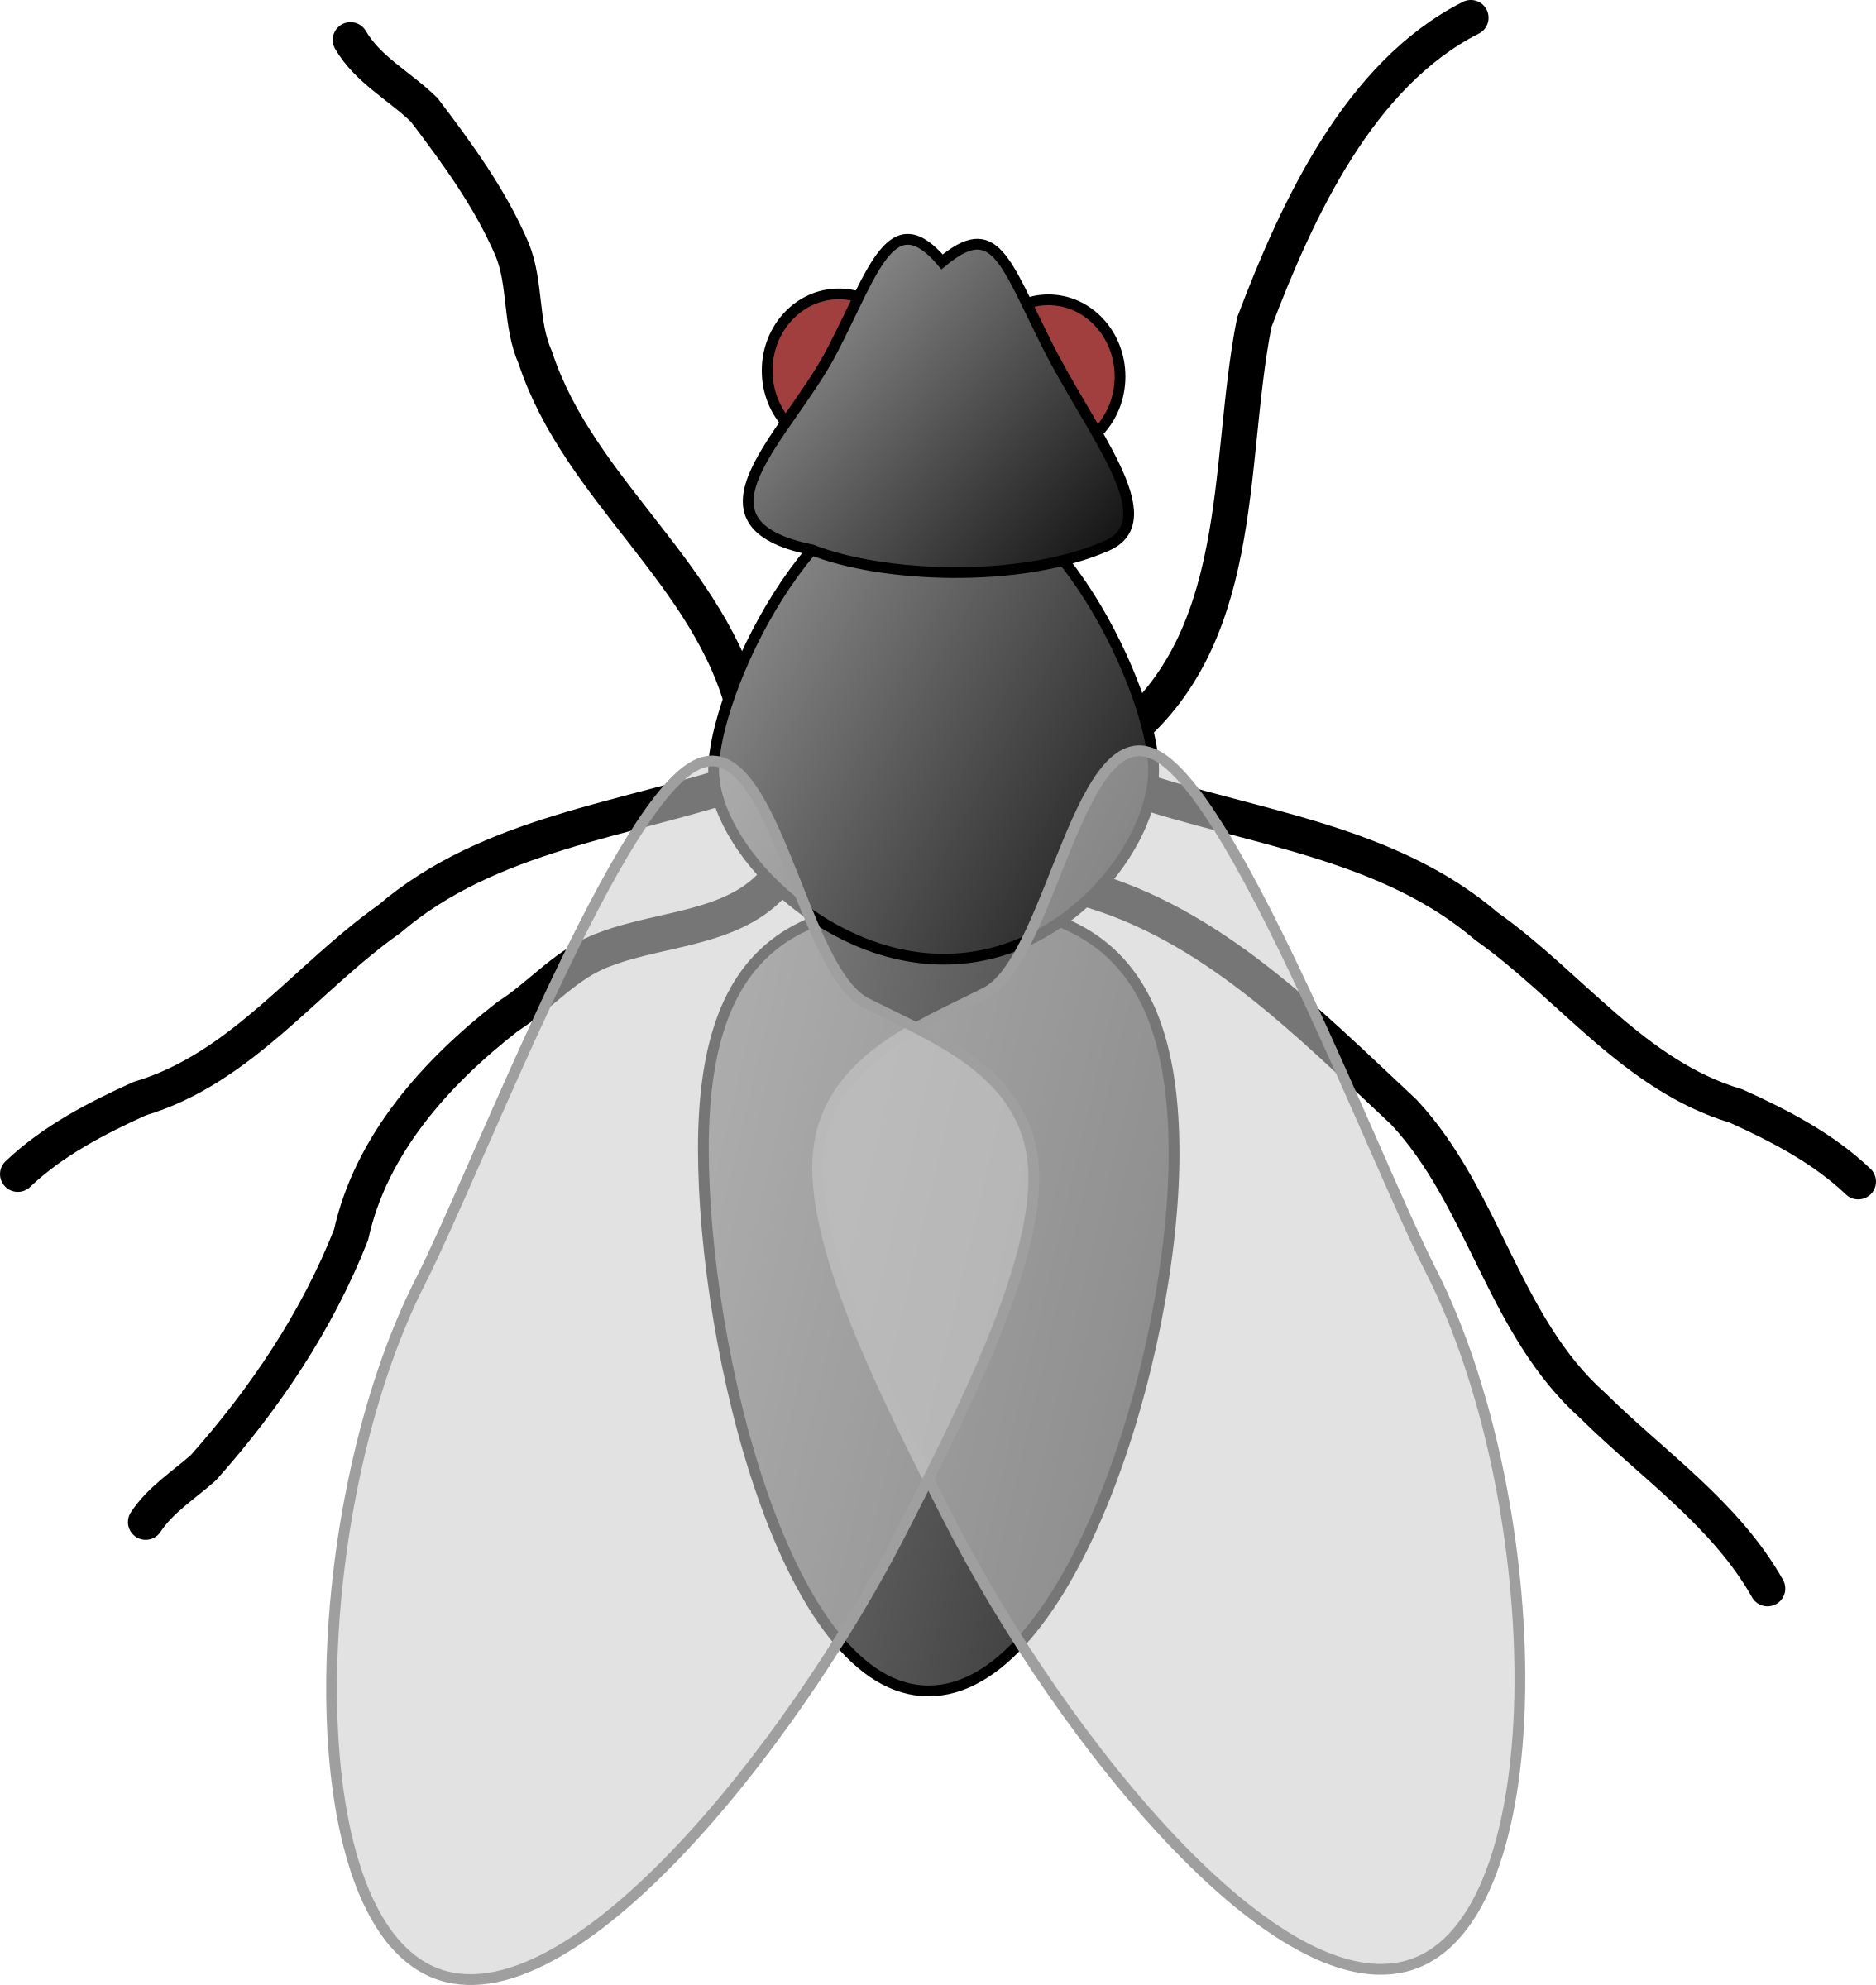 Big image png. Fly clipart office